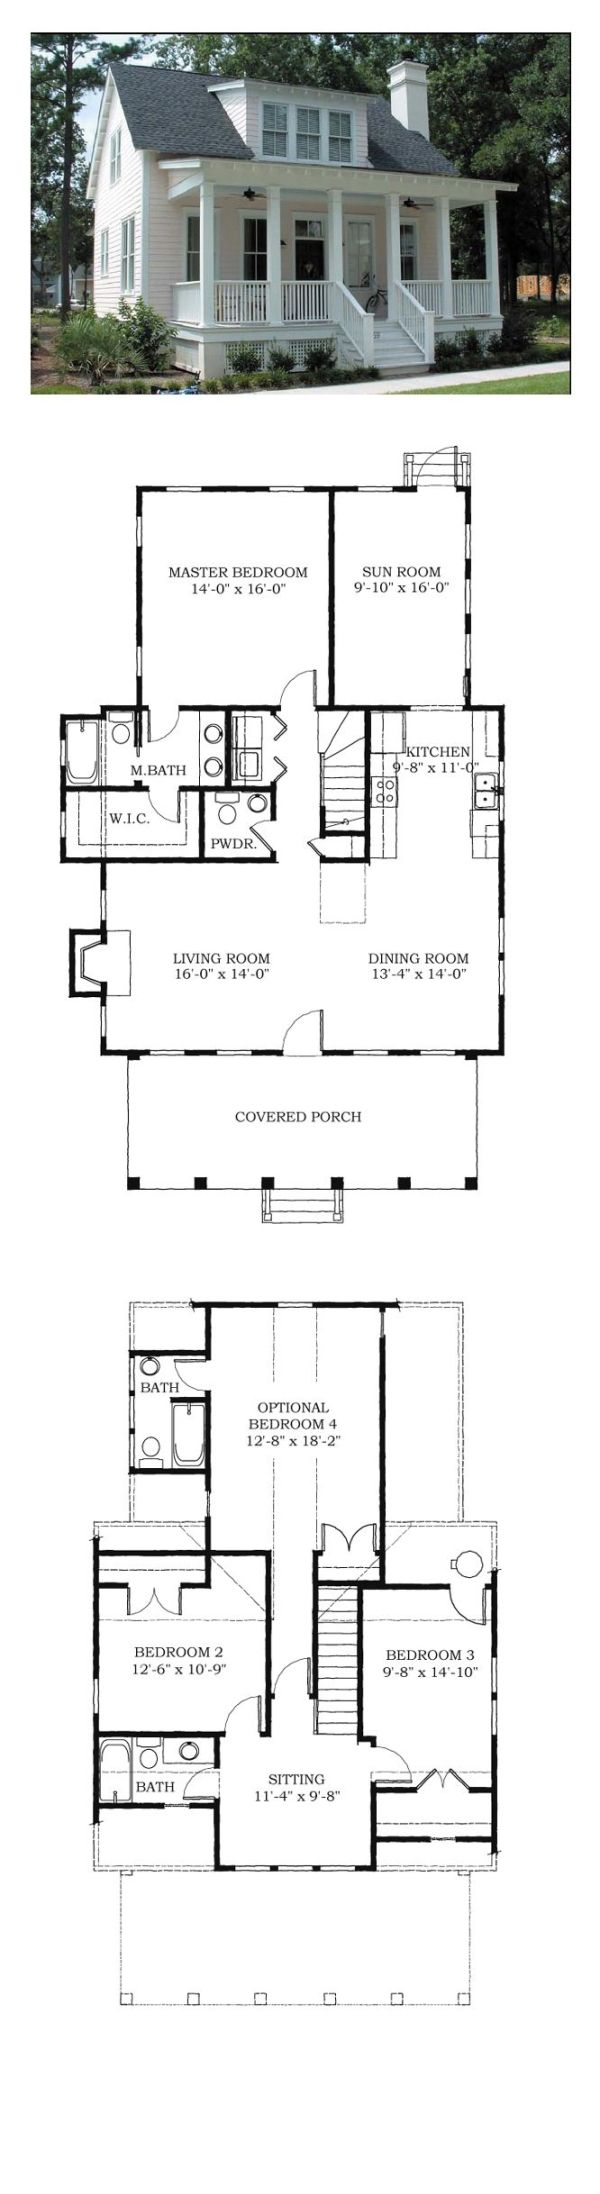 House design and layout - Cool House Plan Id Chp 38703 Total Living Area 1783 Sq